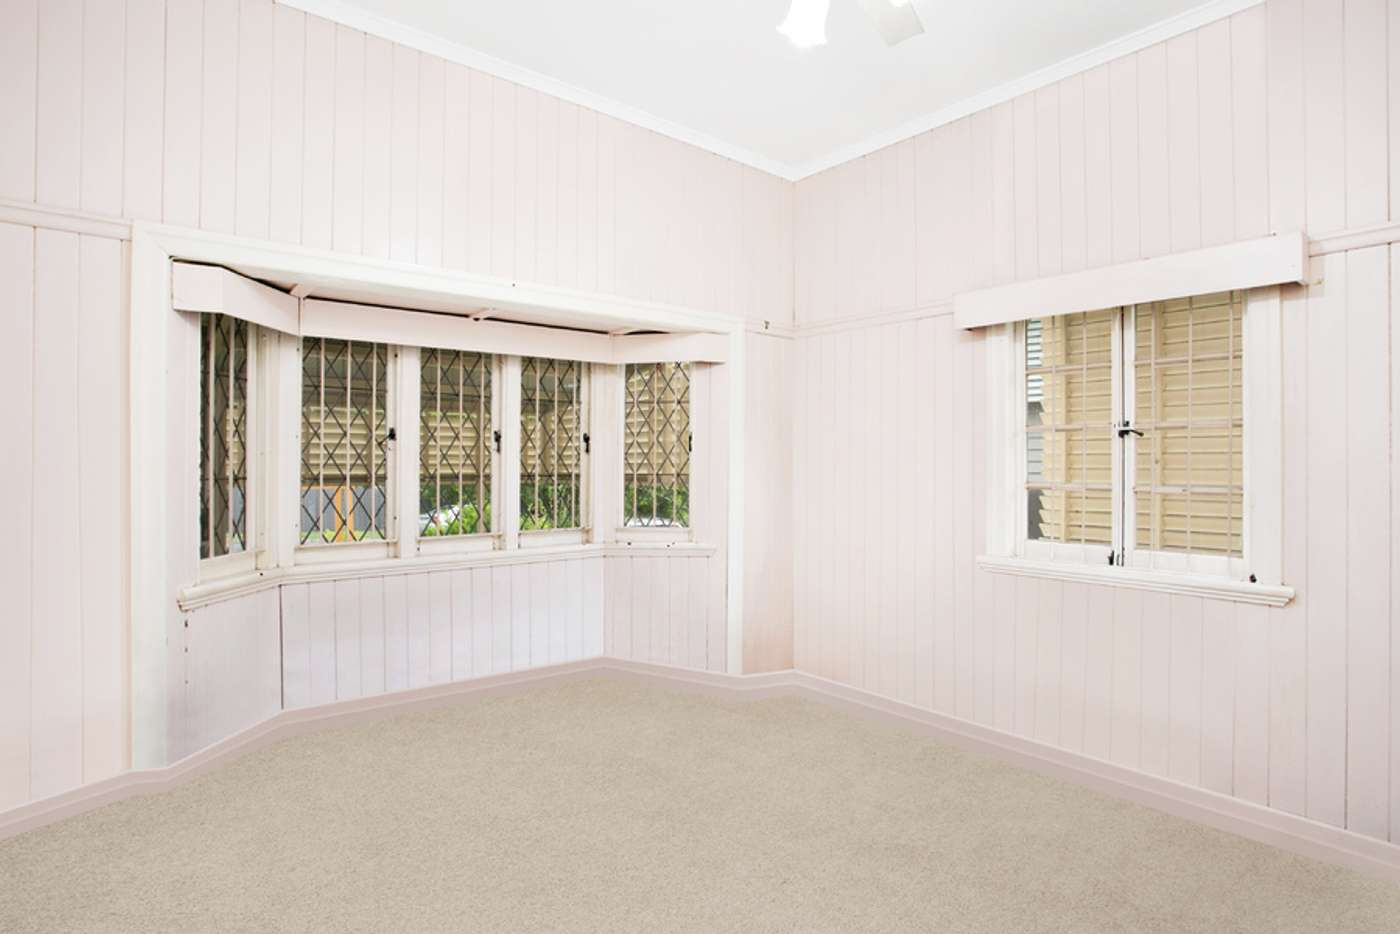 Sixth view of Homely house listing, 77 Davidson Street, Newmarket QLD 4051